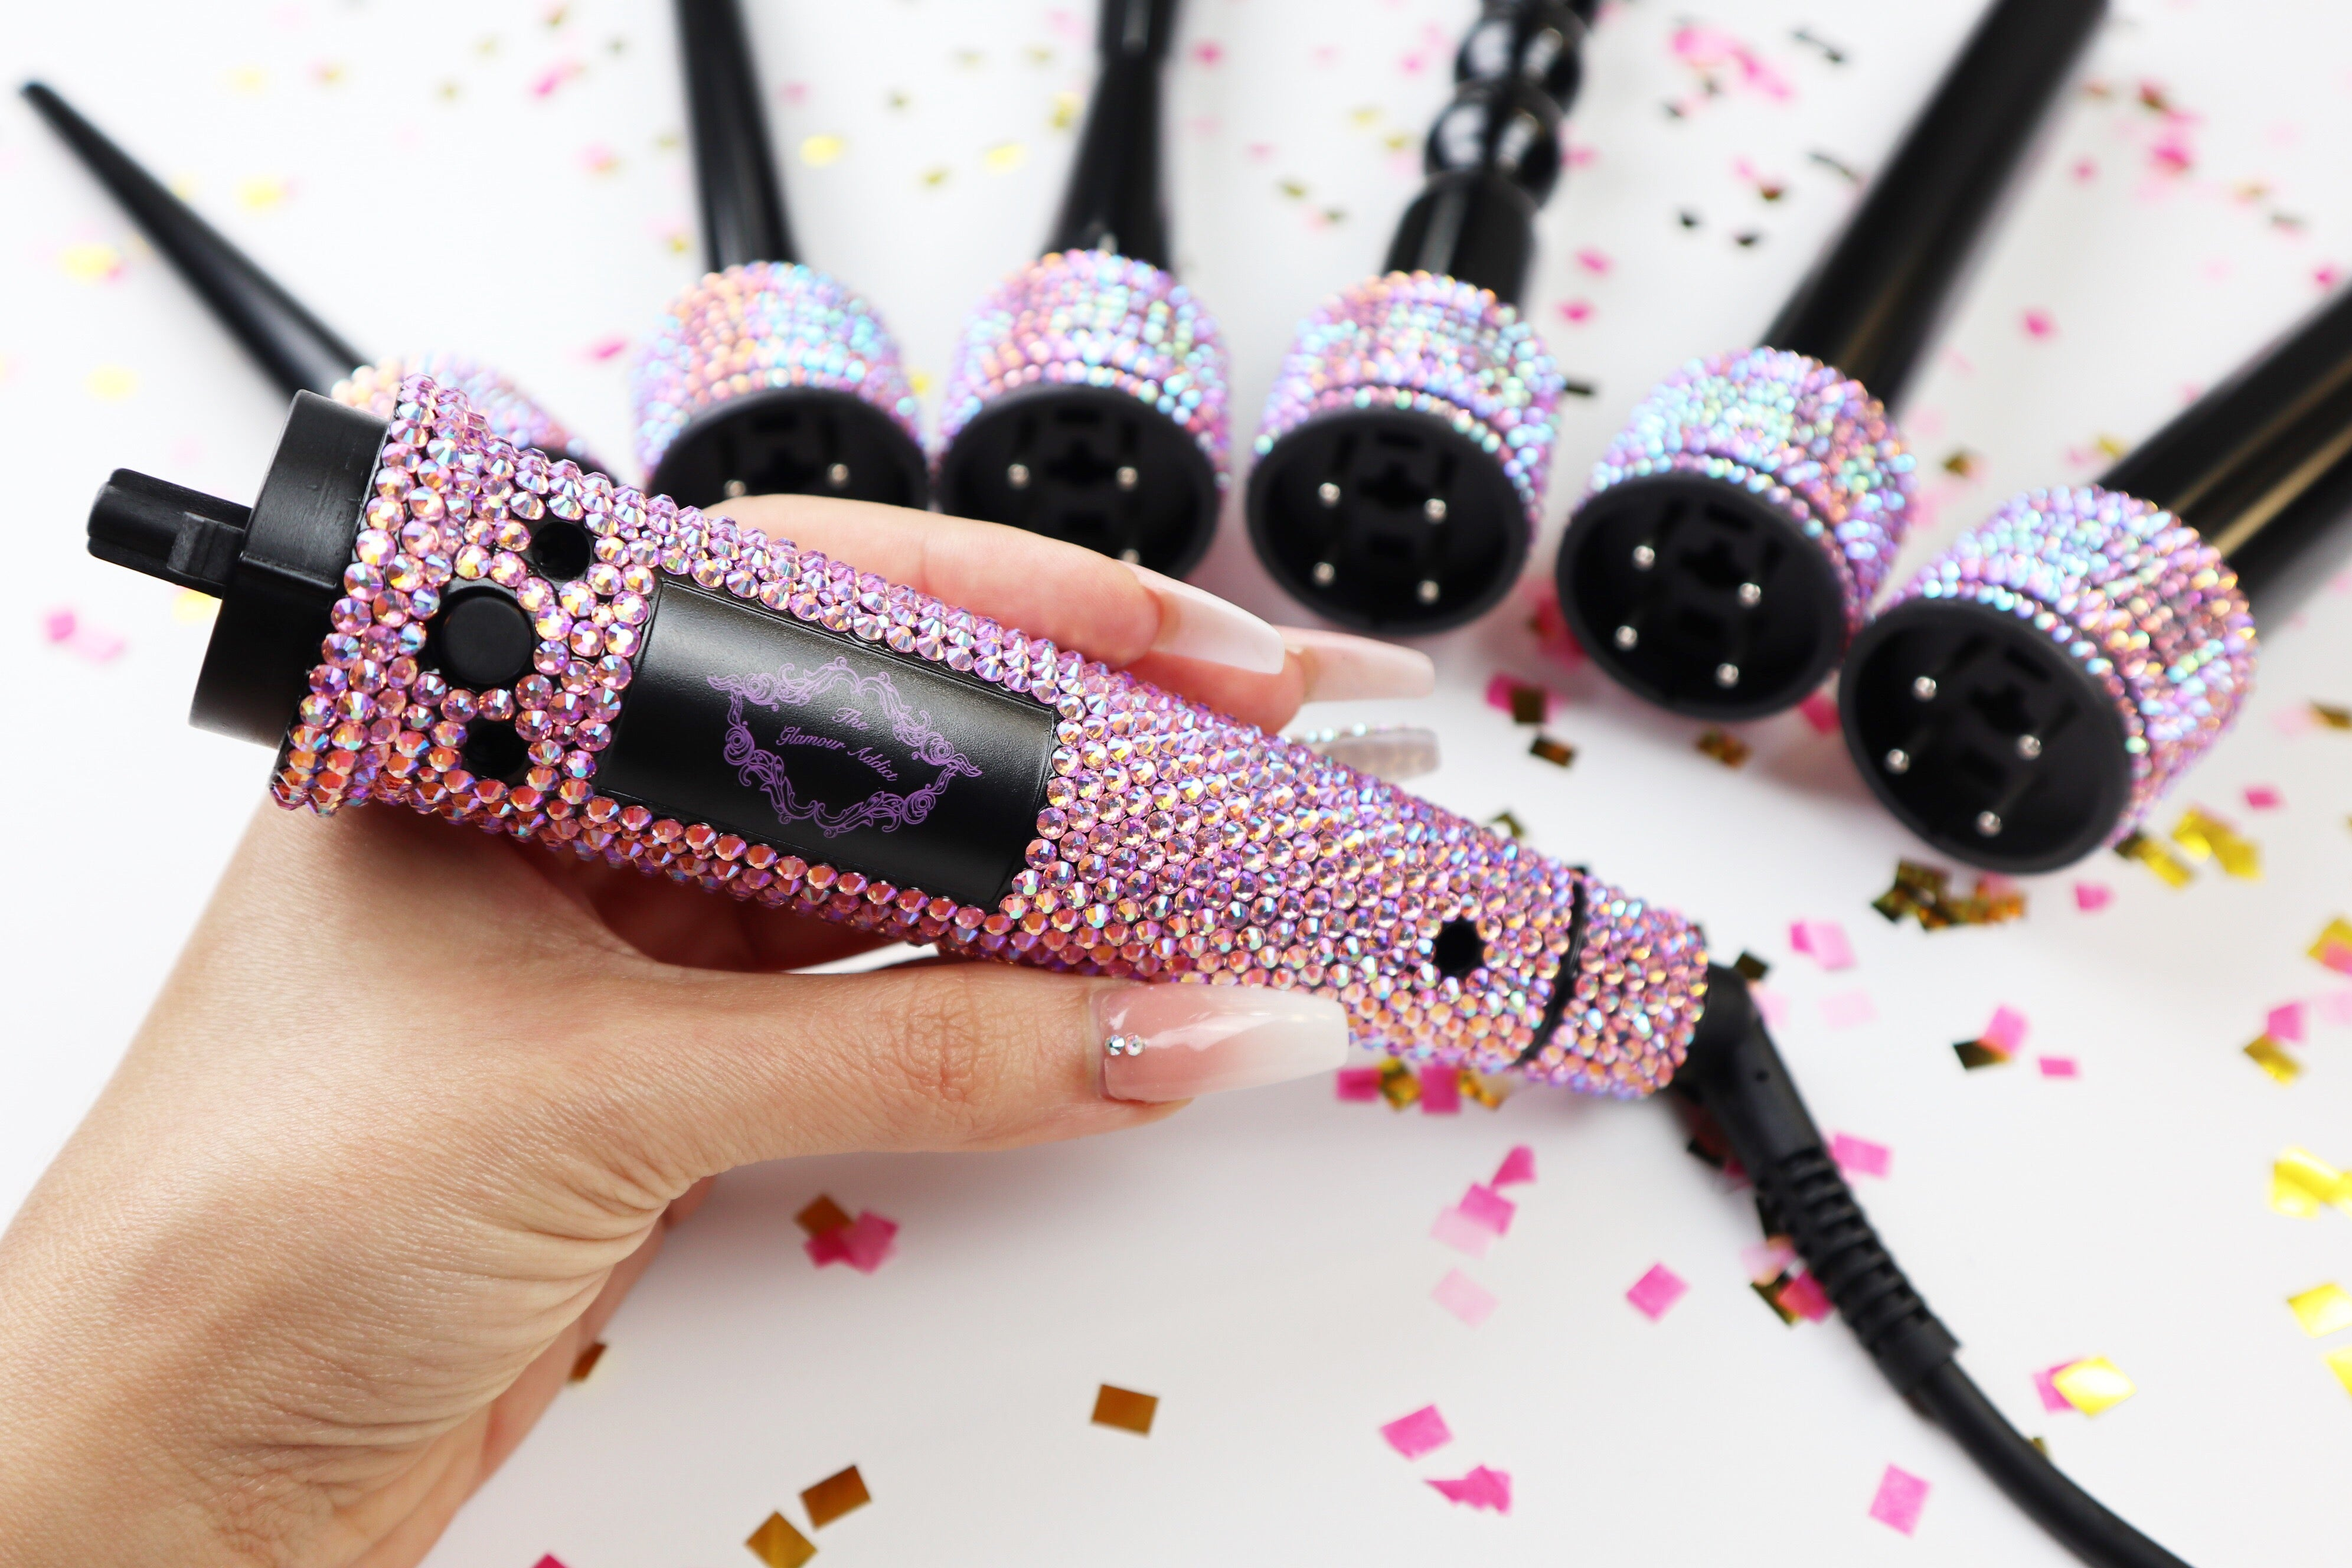 Crystallized 6 in 1 Ceramic Curling Wand